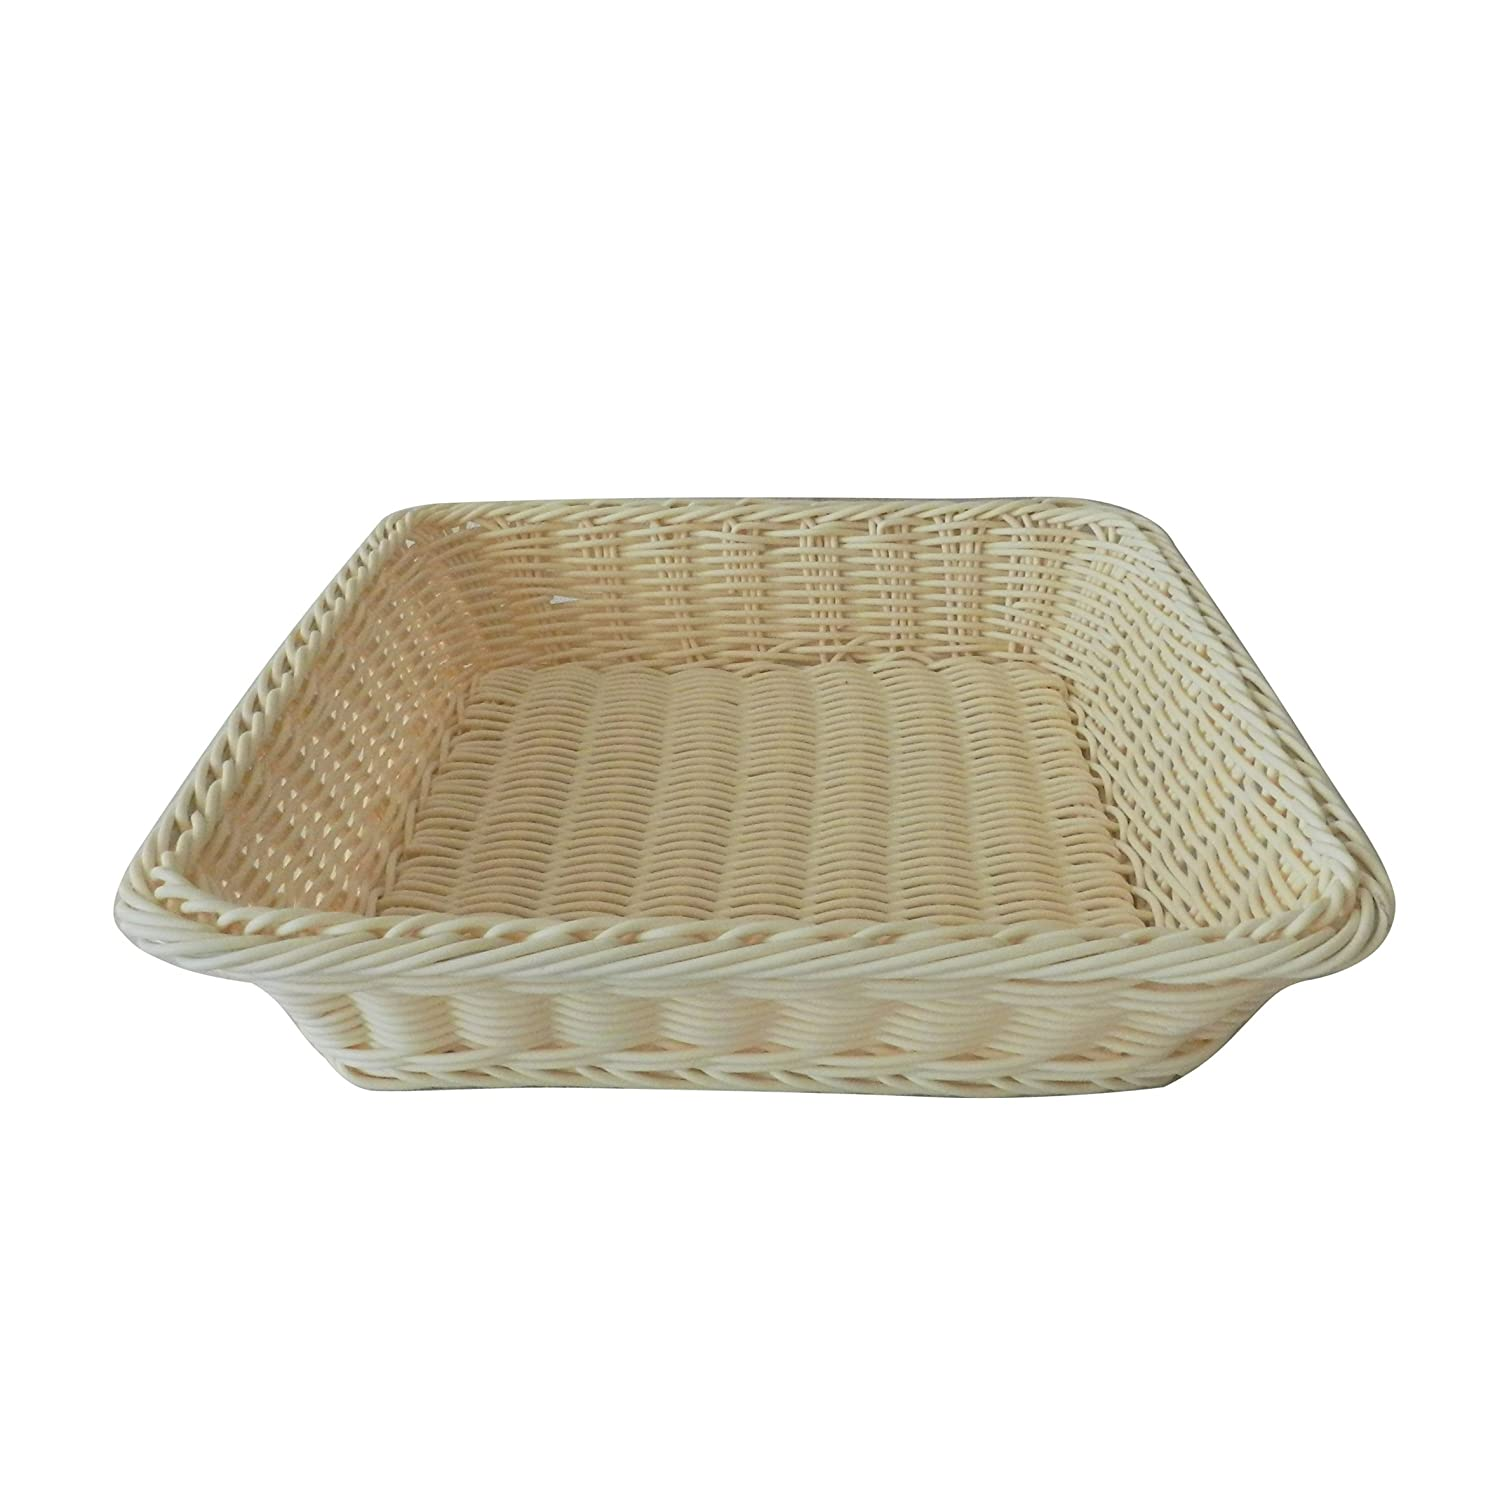 CVHOMEDECO. Square Imitation Rattan Bread Basket Fruit Display Basket Food Serving Basket Resin Wicker Supermarket Showcase. Pale Yellow. 12